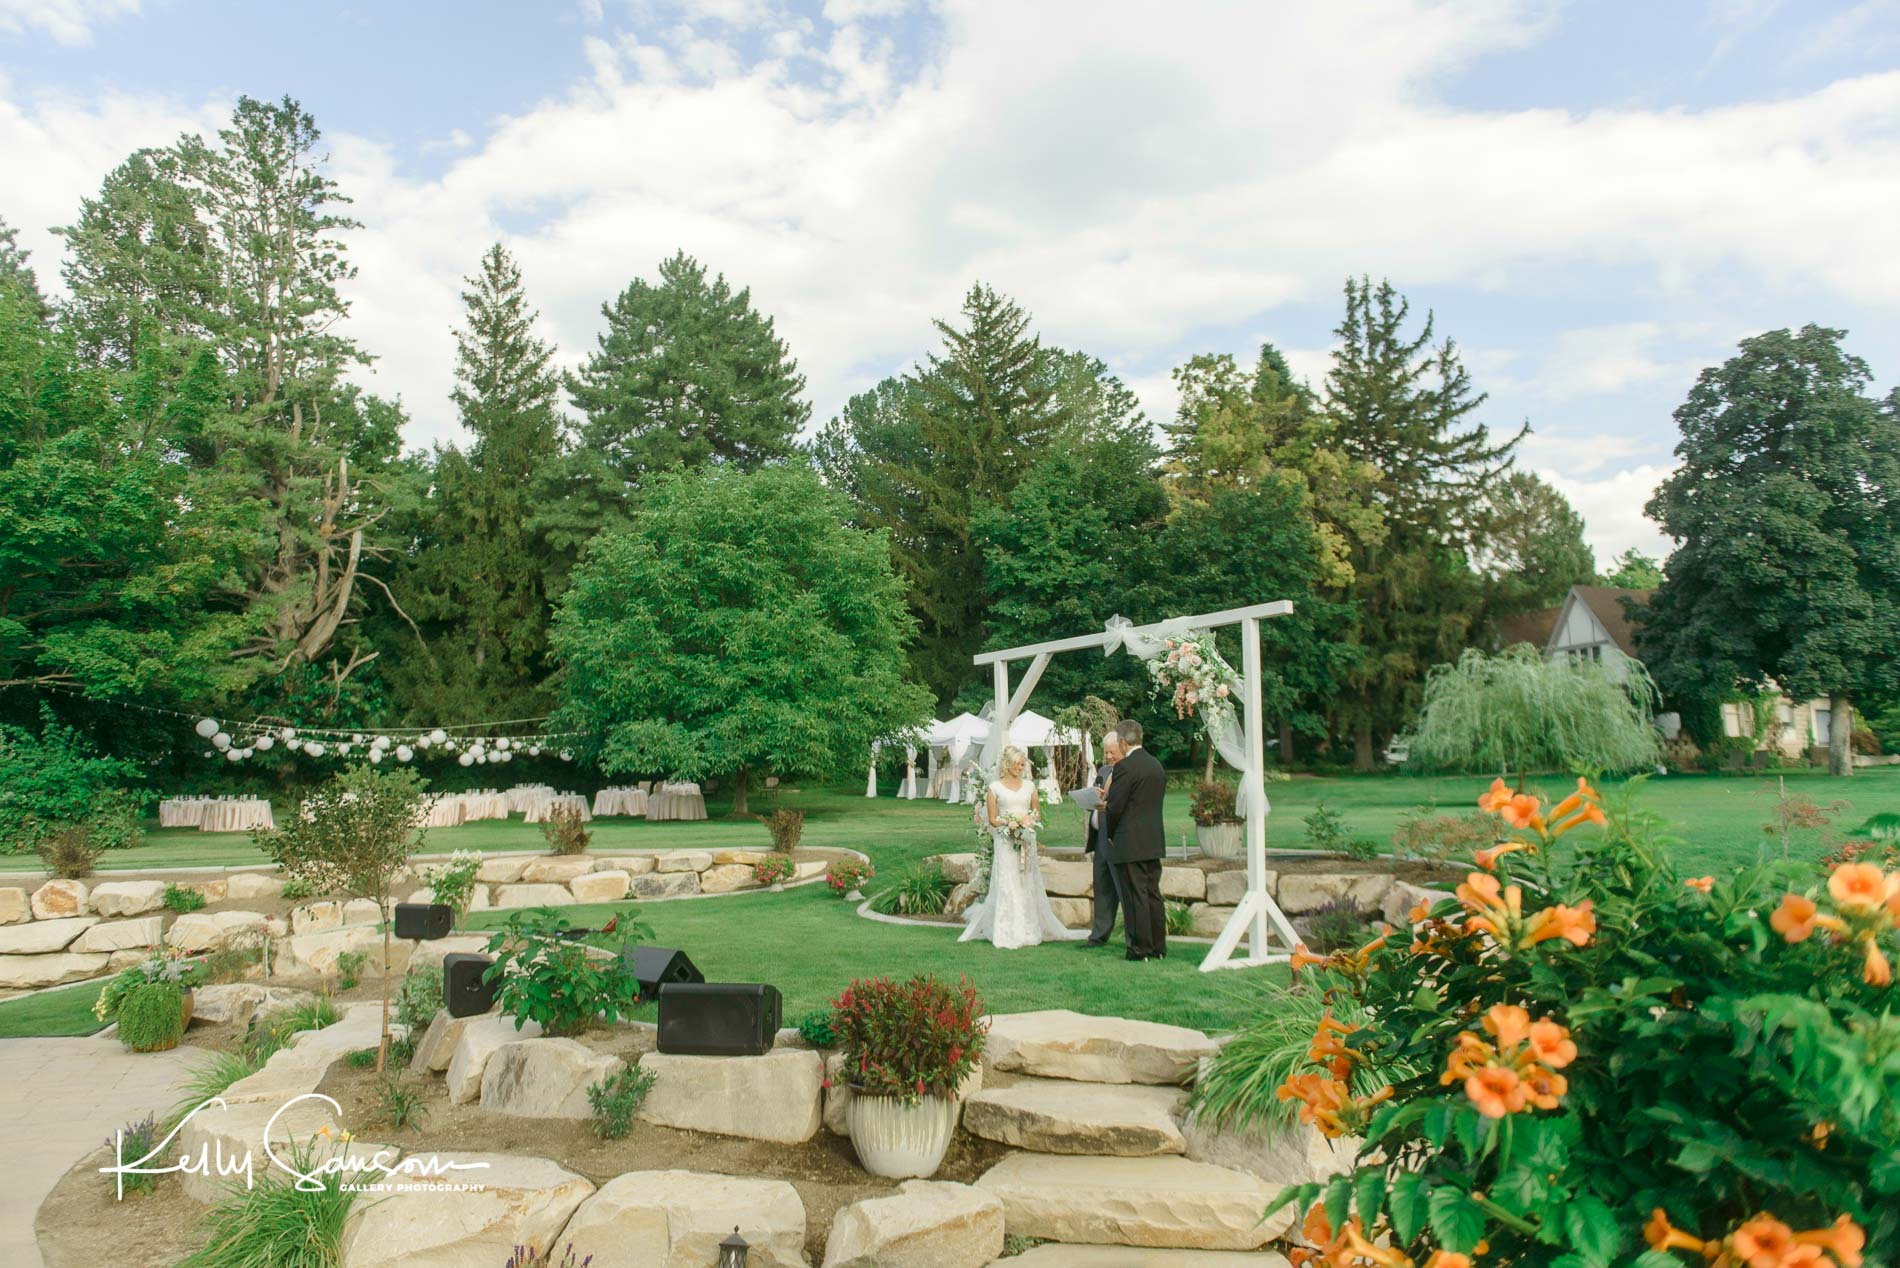 Couple being married in a beautiful yard for Bountiful Utah photography.